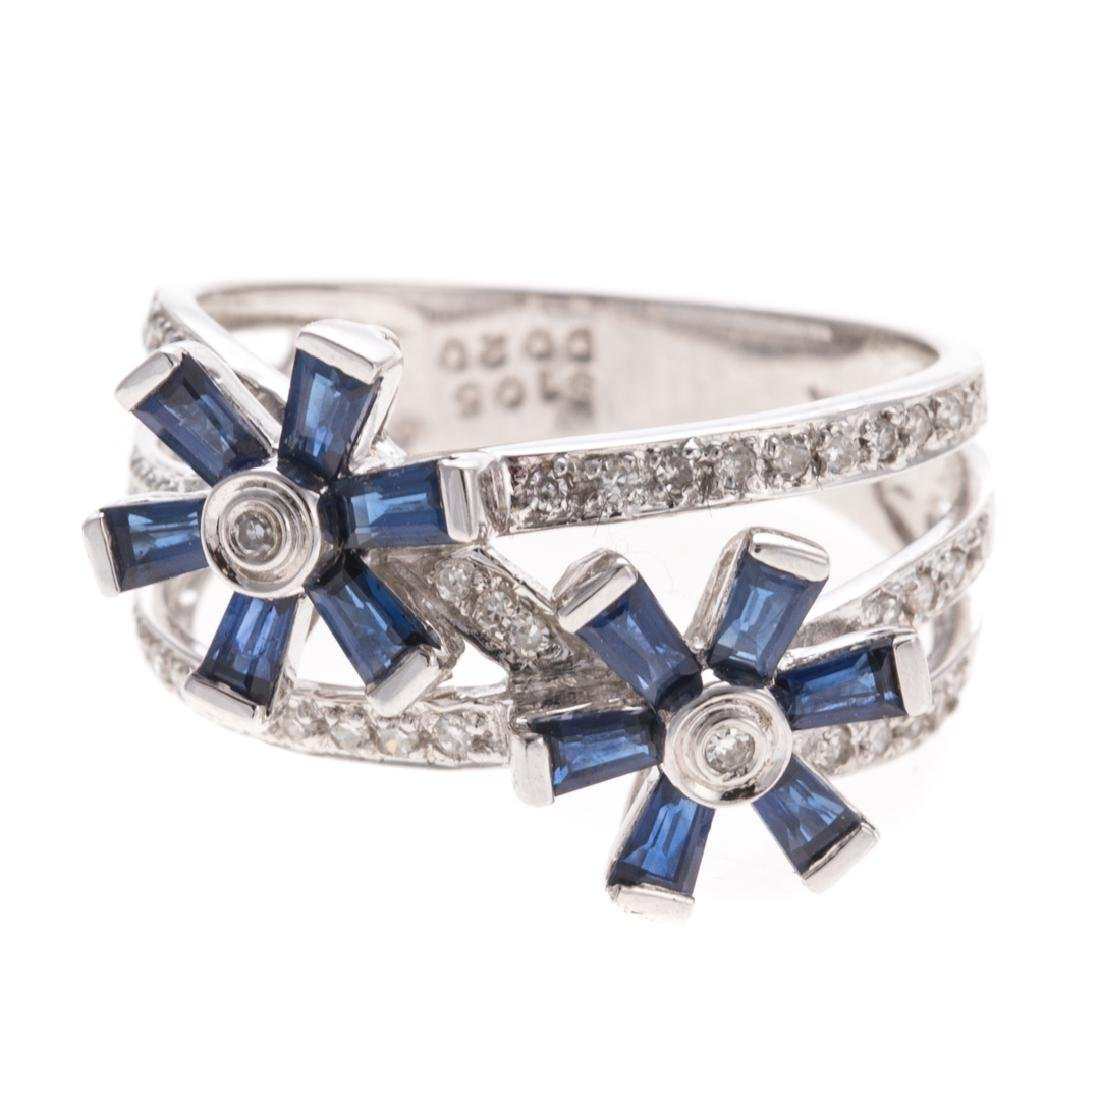 A Lady's Sapphire & Diamond Ring in 14K Gold - 2